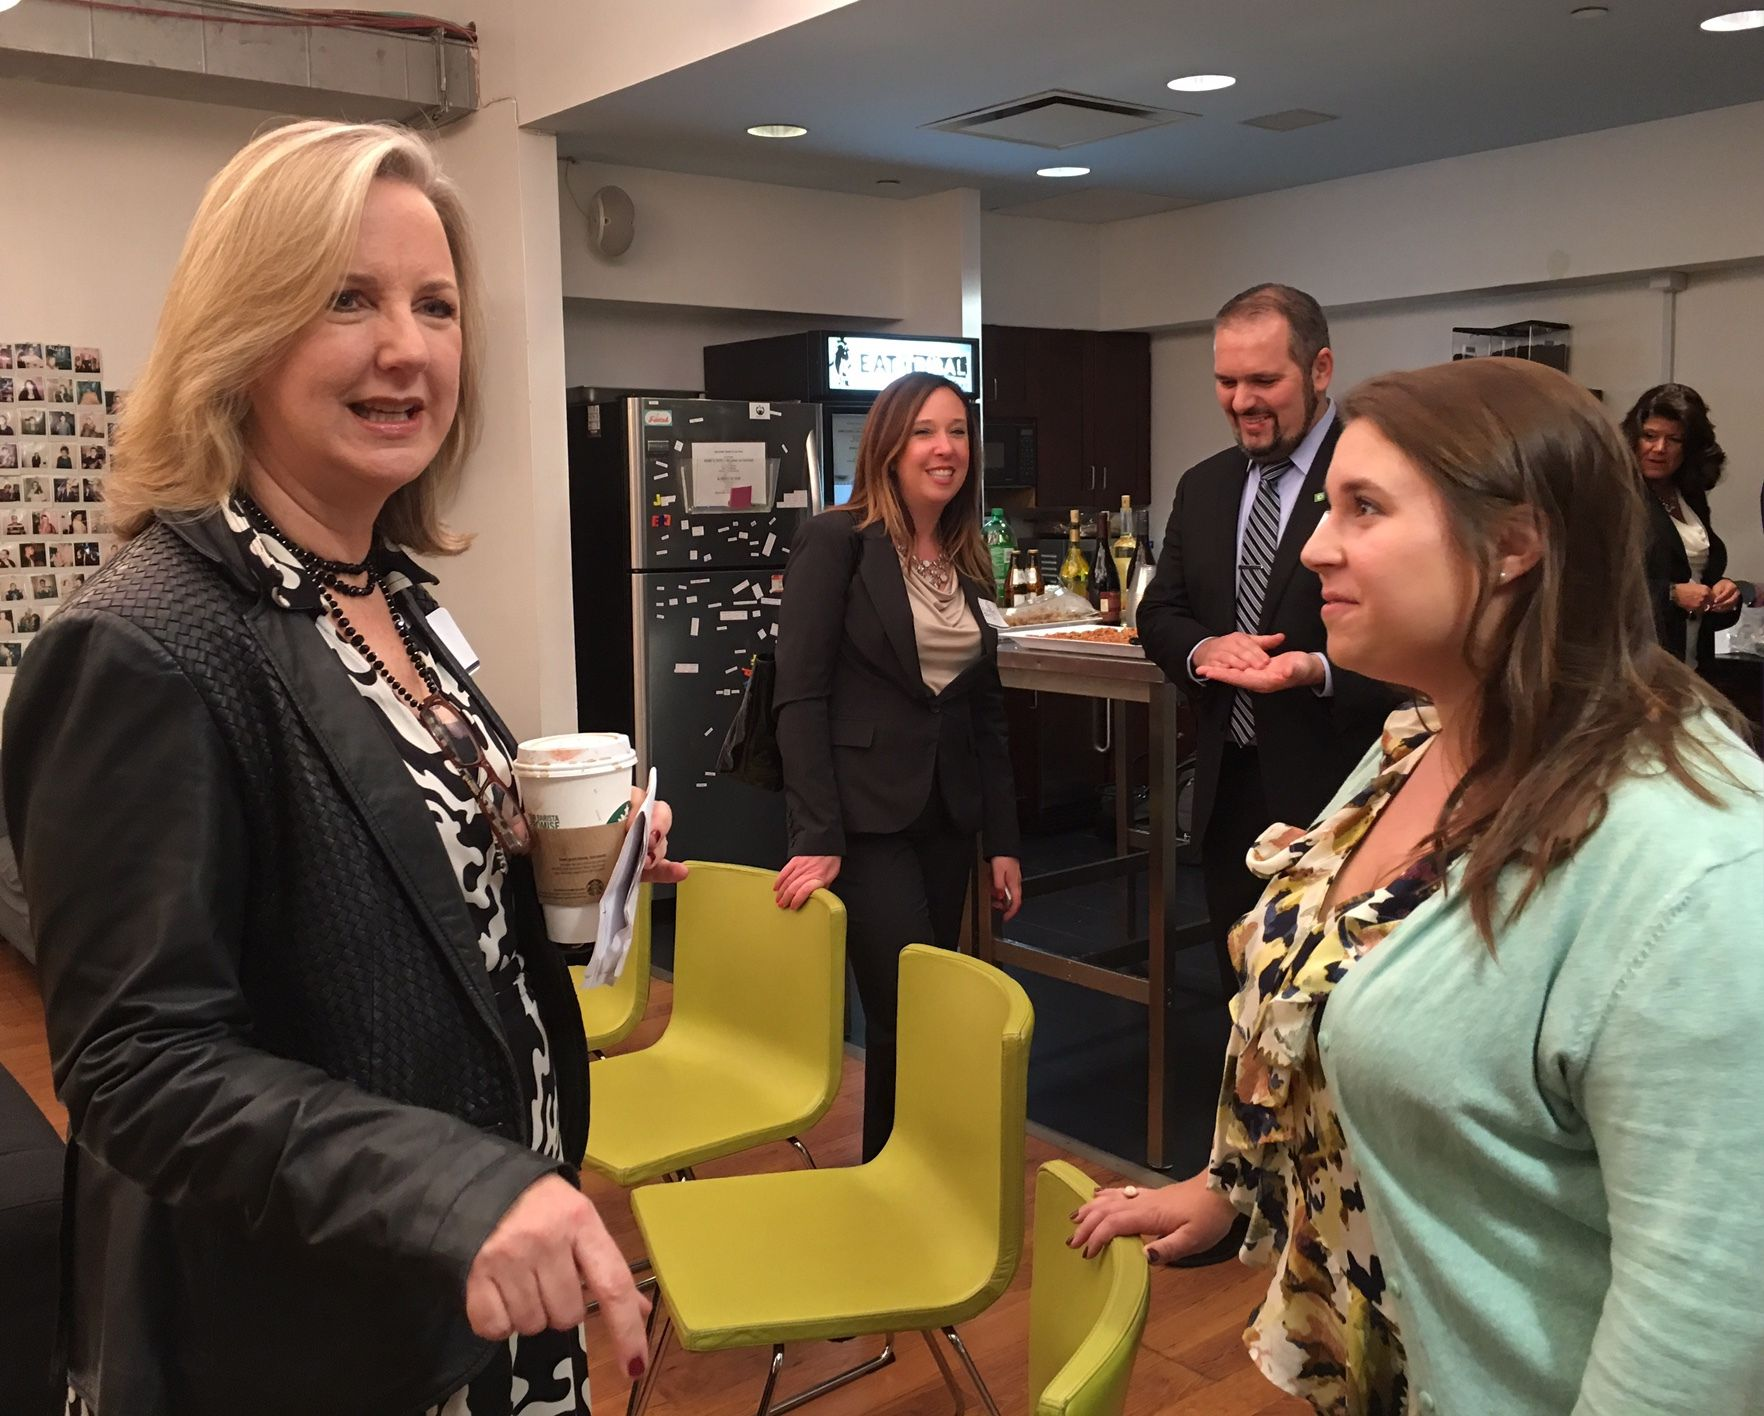 Photos - NYC Women Driving Payments (New York, NY) | Meetup